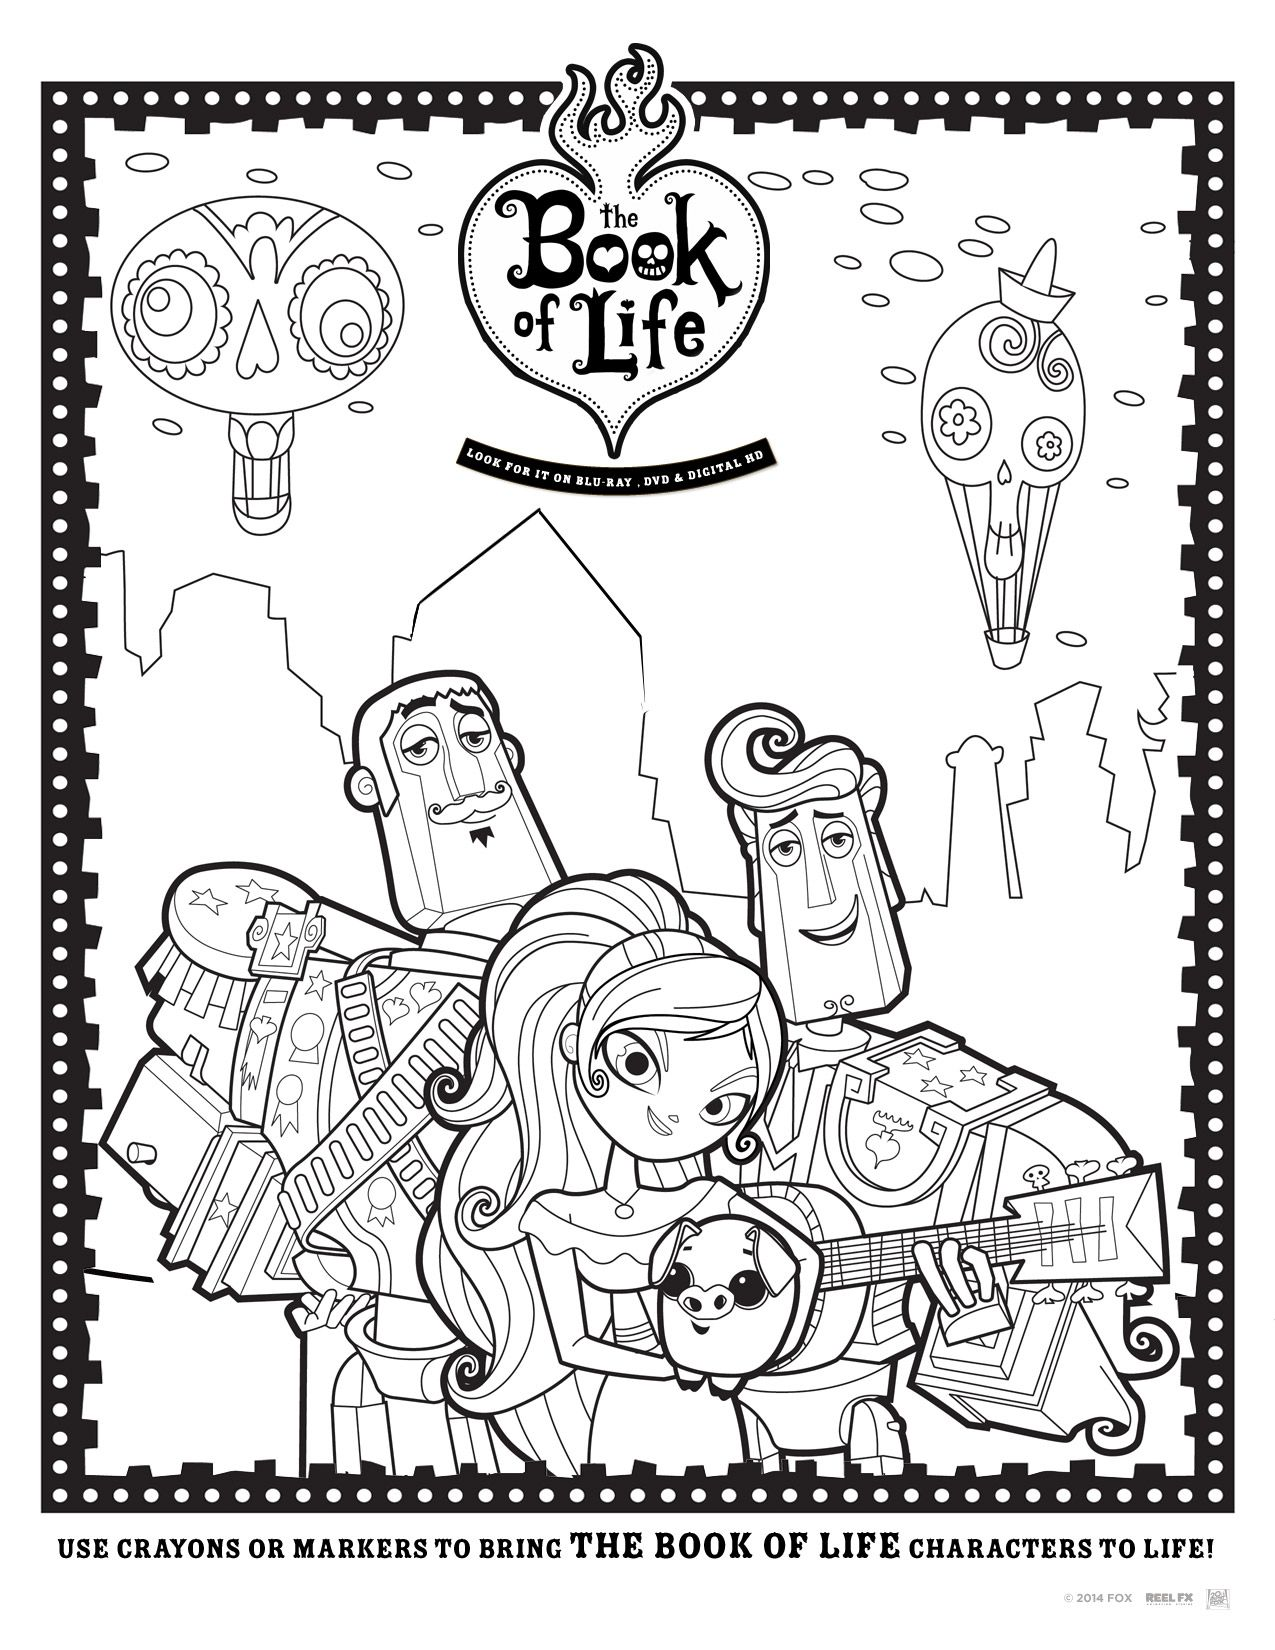 book of life coloring pages Family Movie Night with The Book of Life Movie | KIDS | Book of  book of life coloring pages